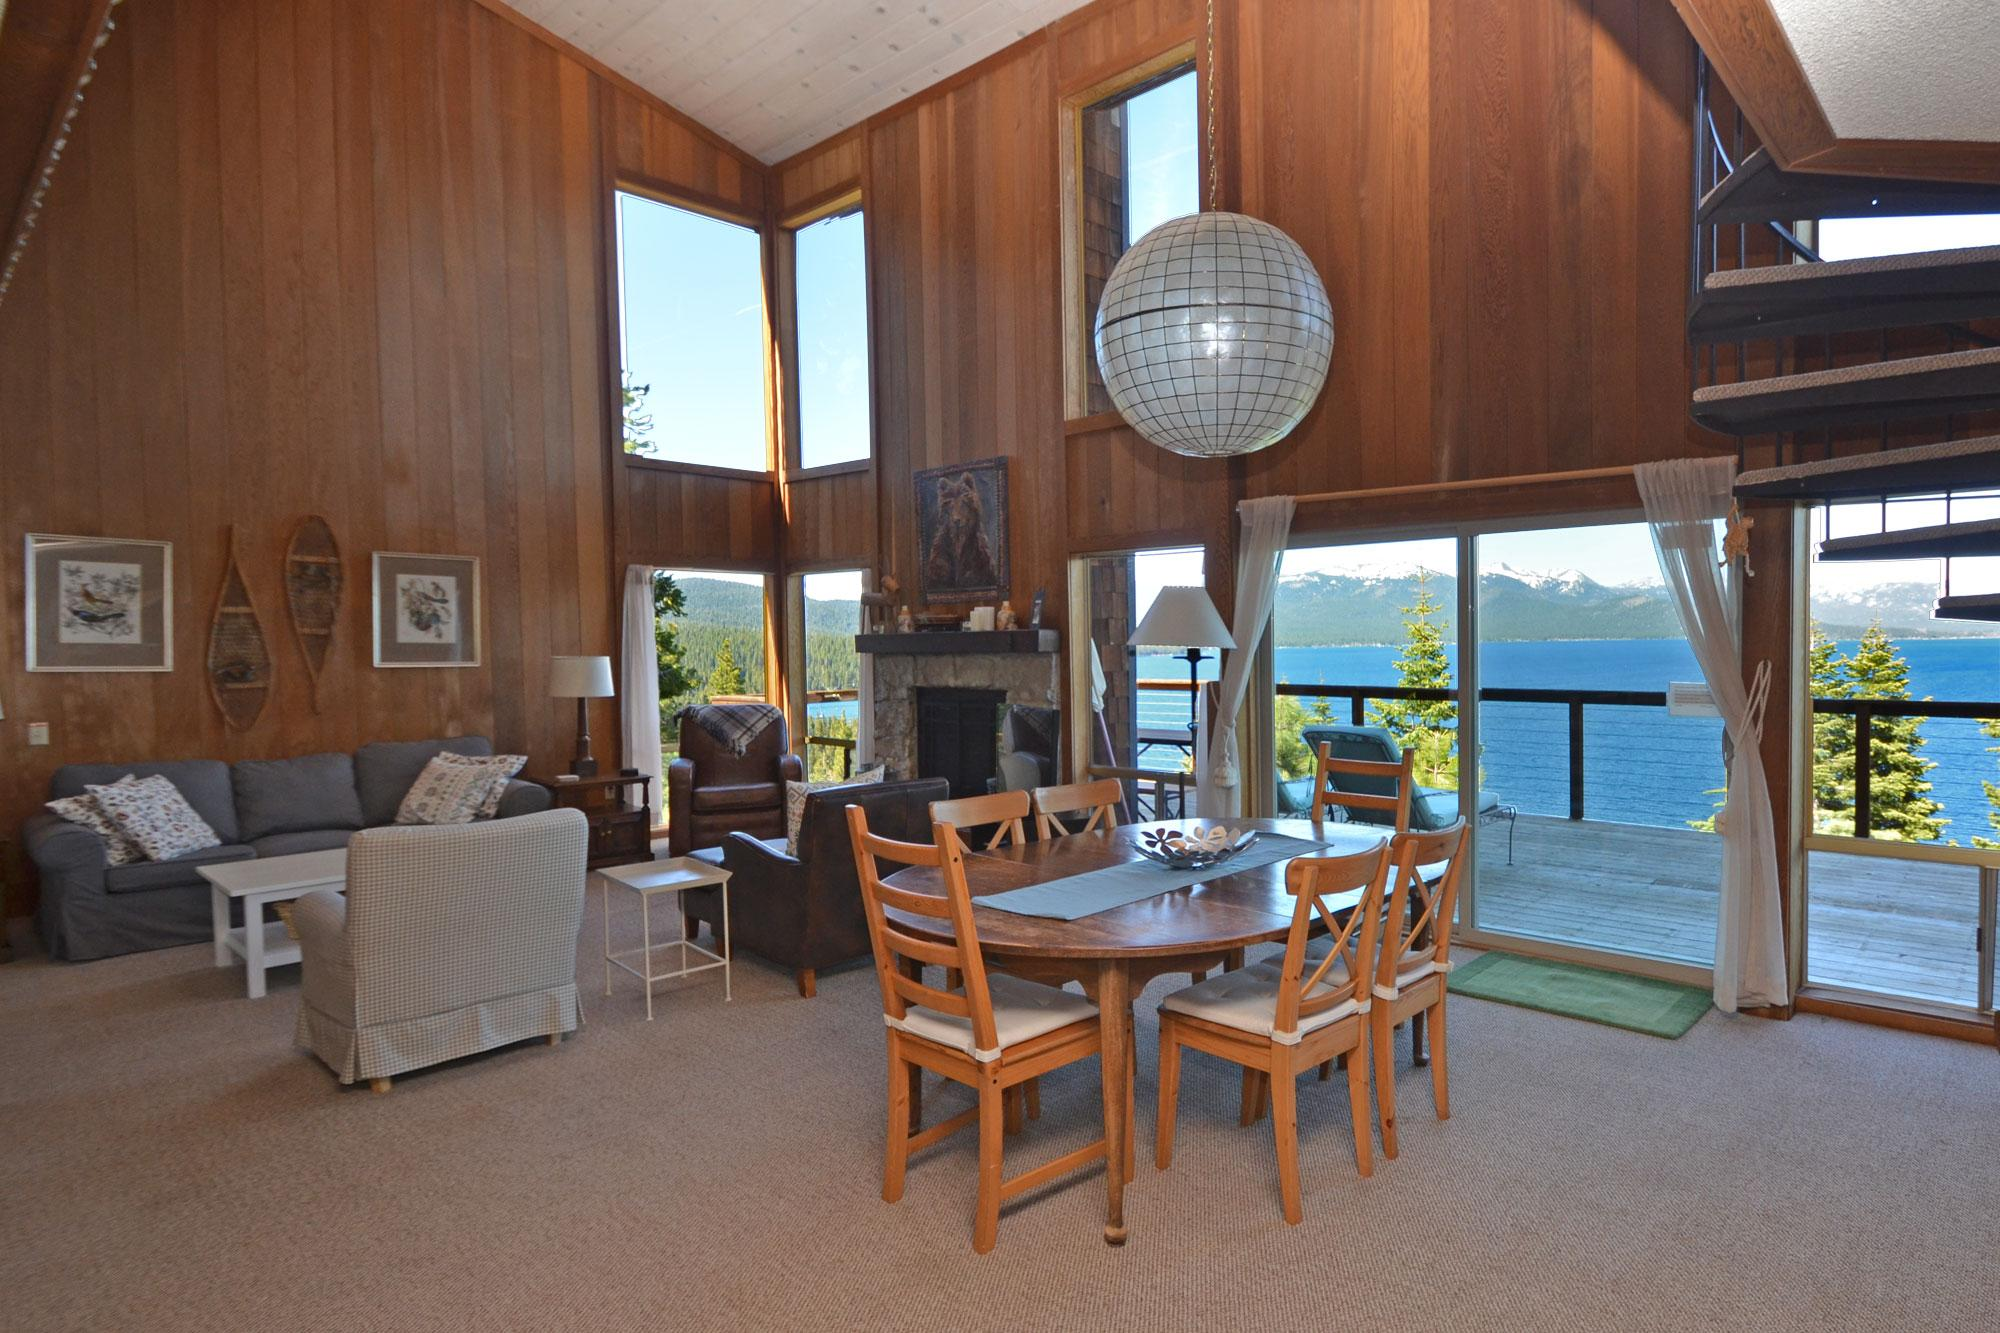 Dining Area with Great Views of Lake Tahoe